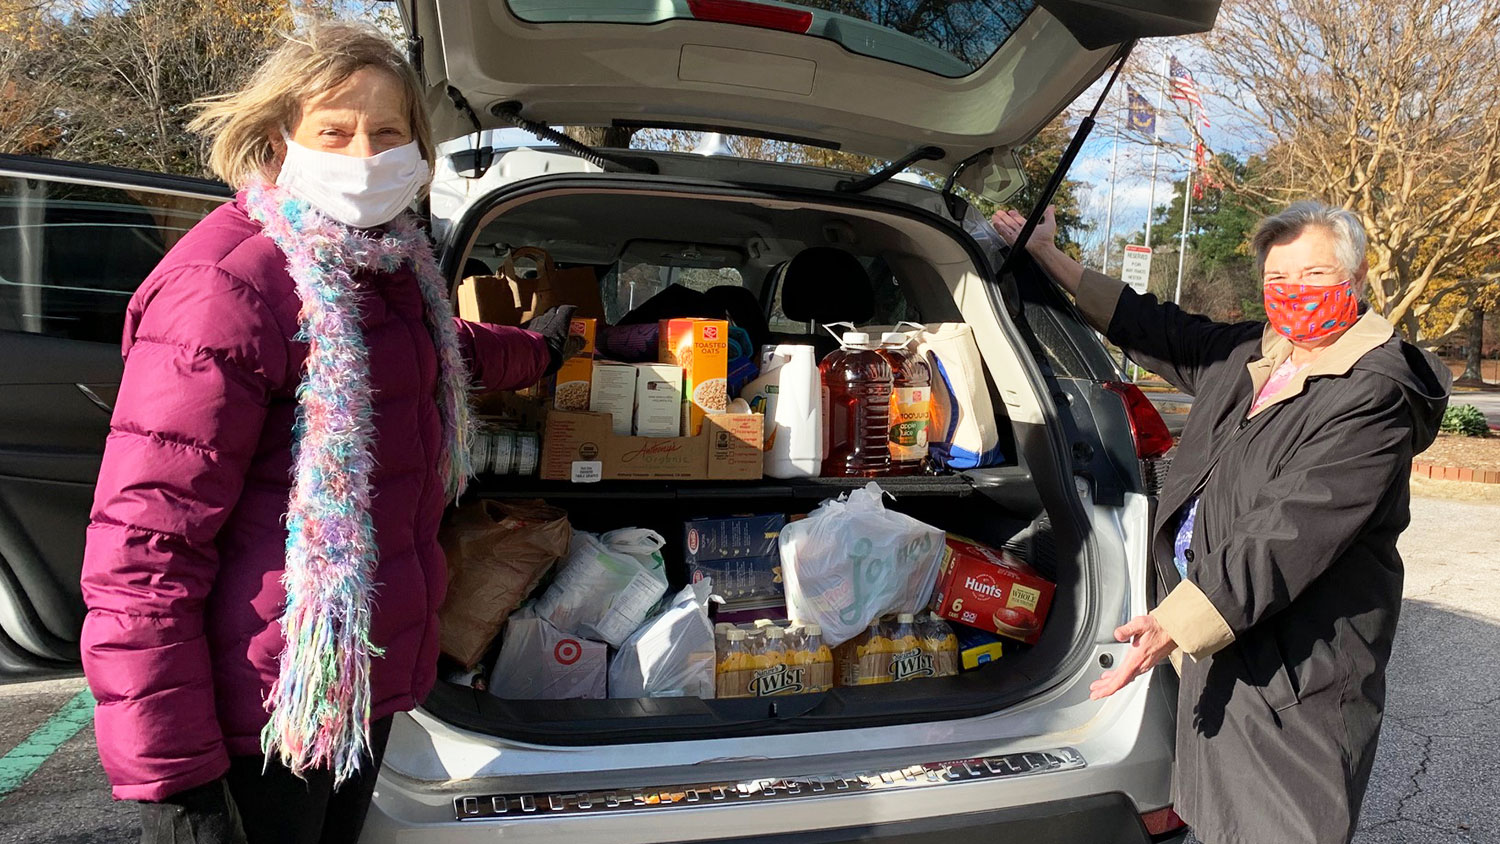 two women standing next to car packed with food donations